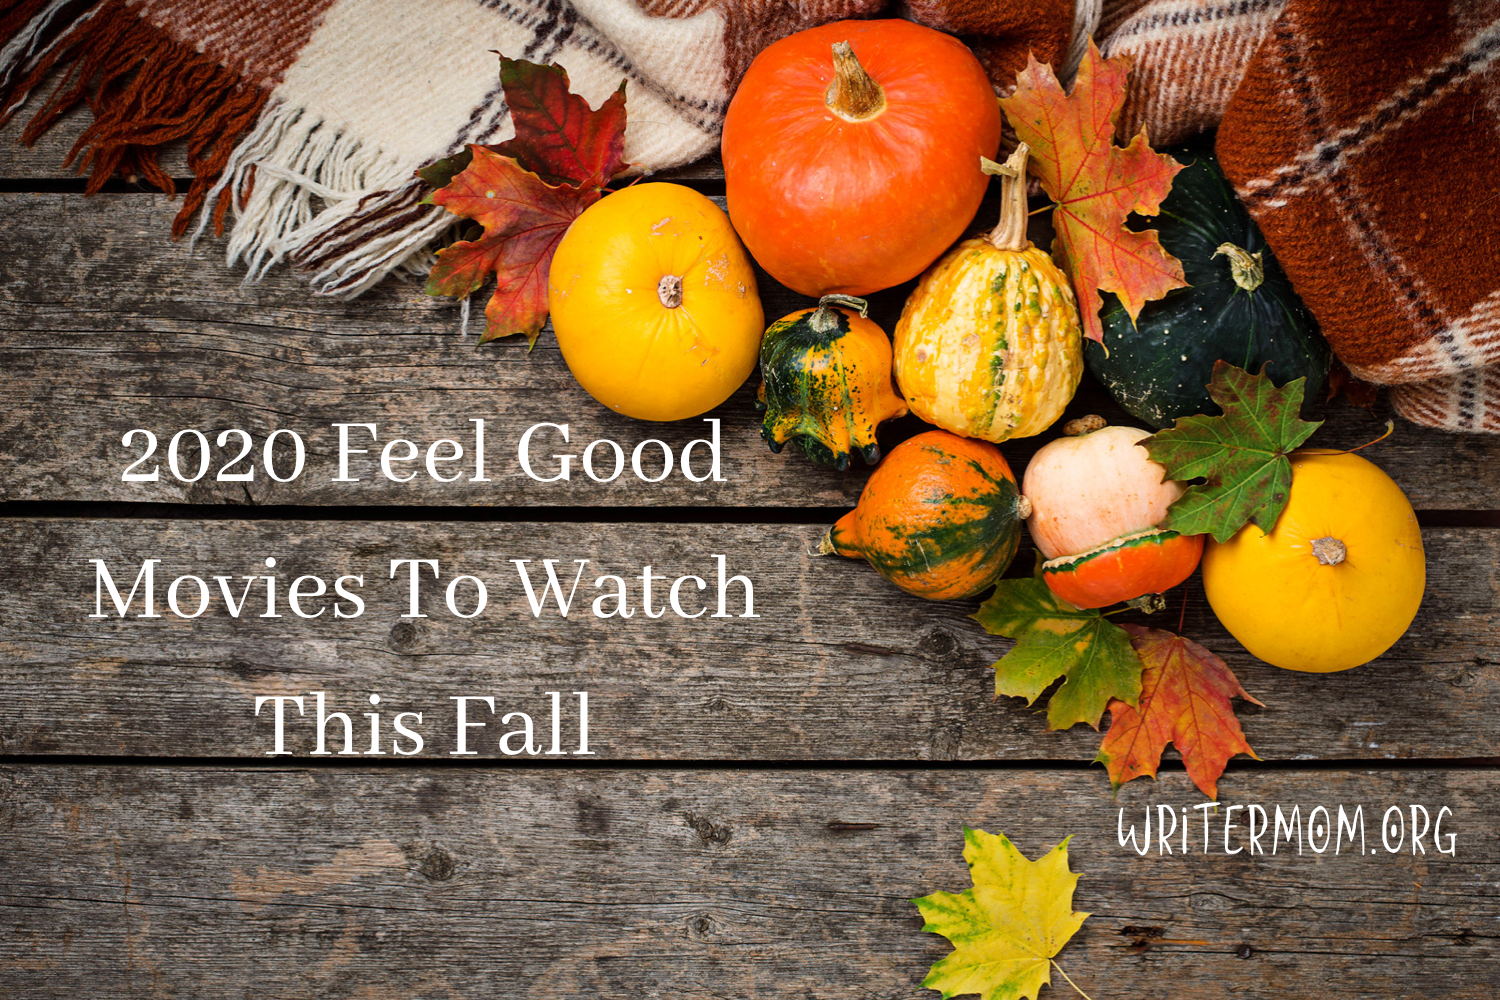 2020 Feel Good Movies to Watch This Fall